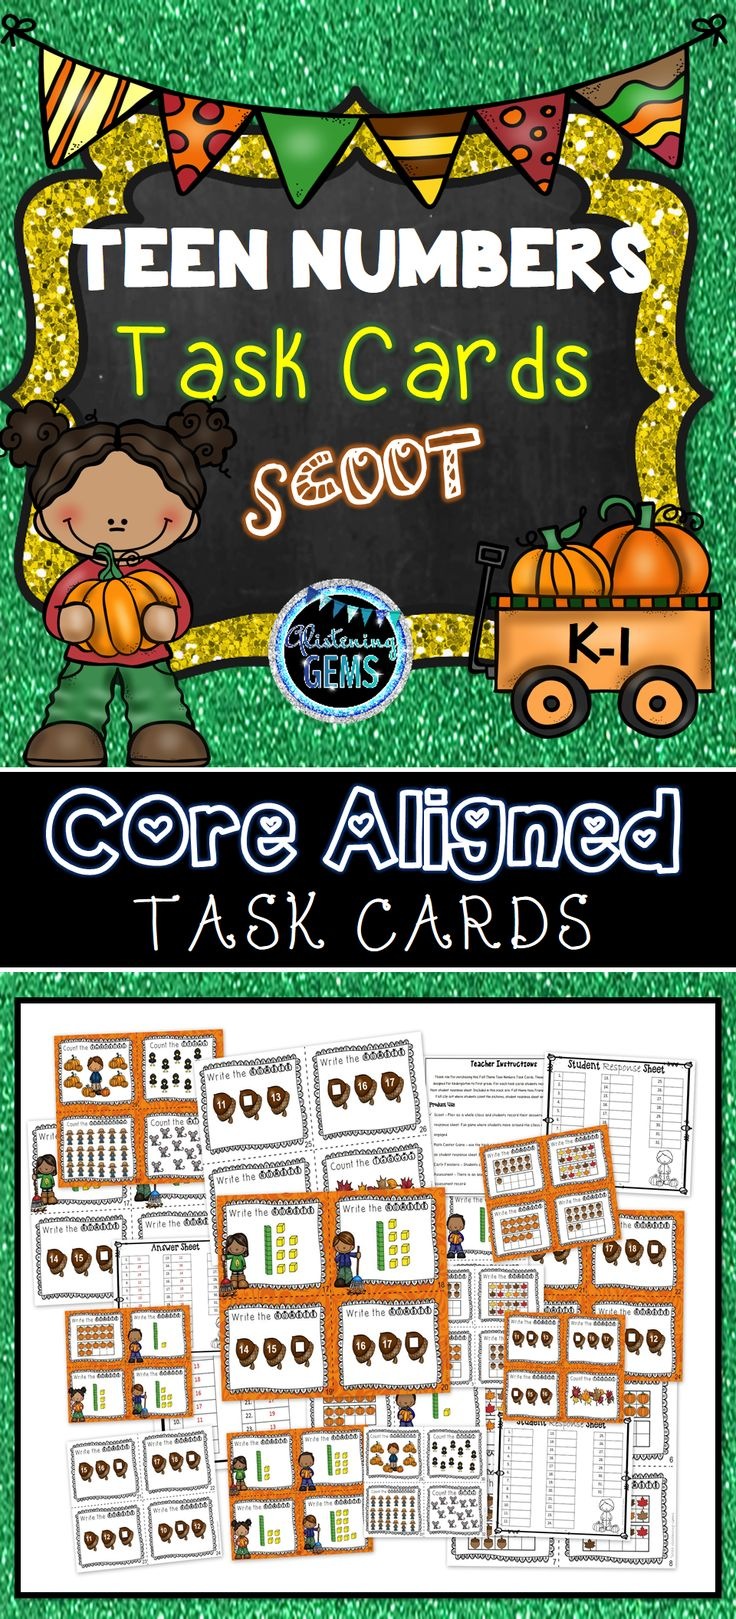 Teen Numbers Task Cards - Fall Themed - K-1 Core Aligned